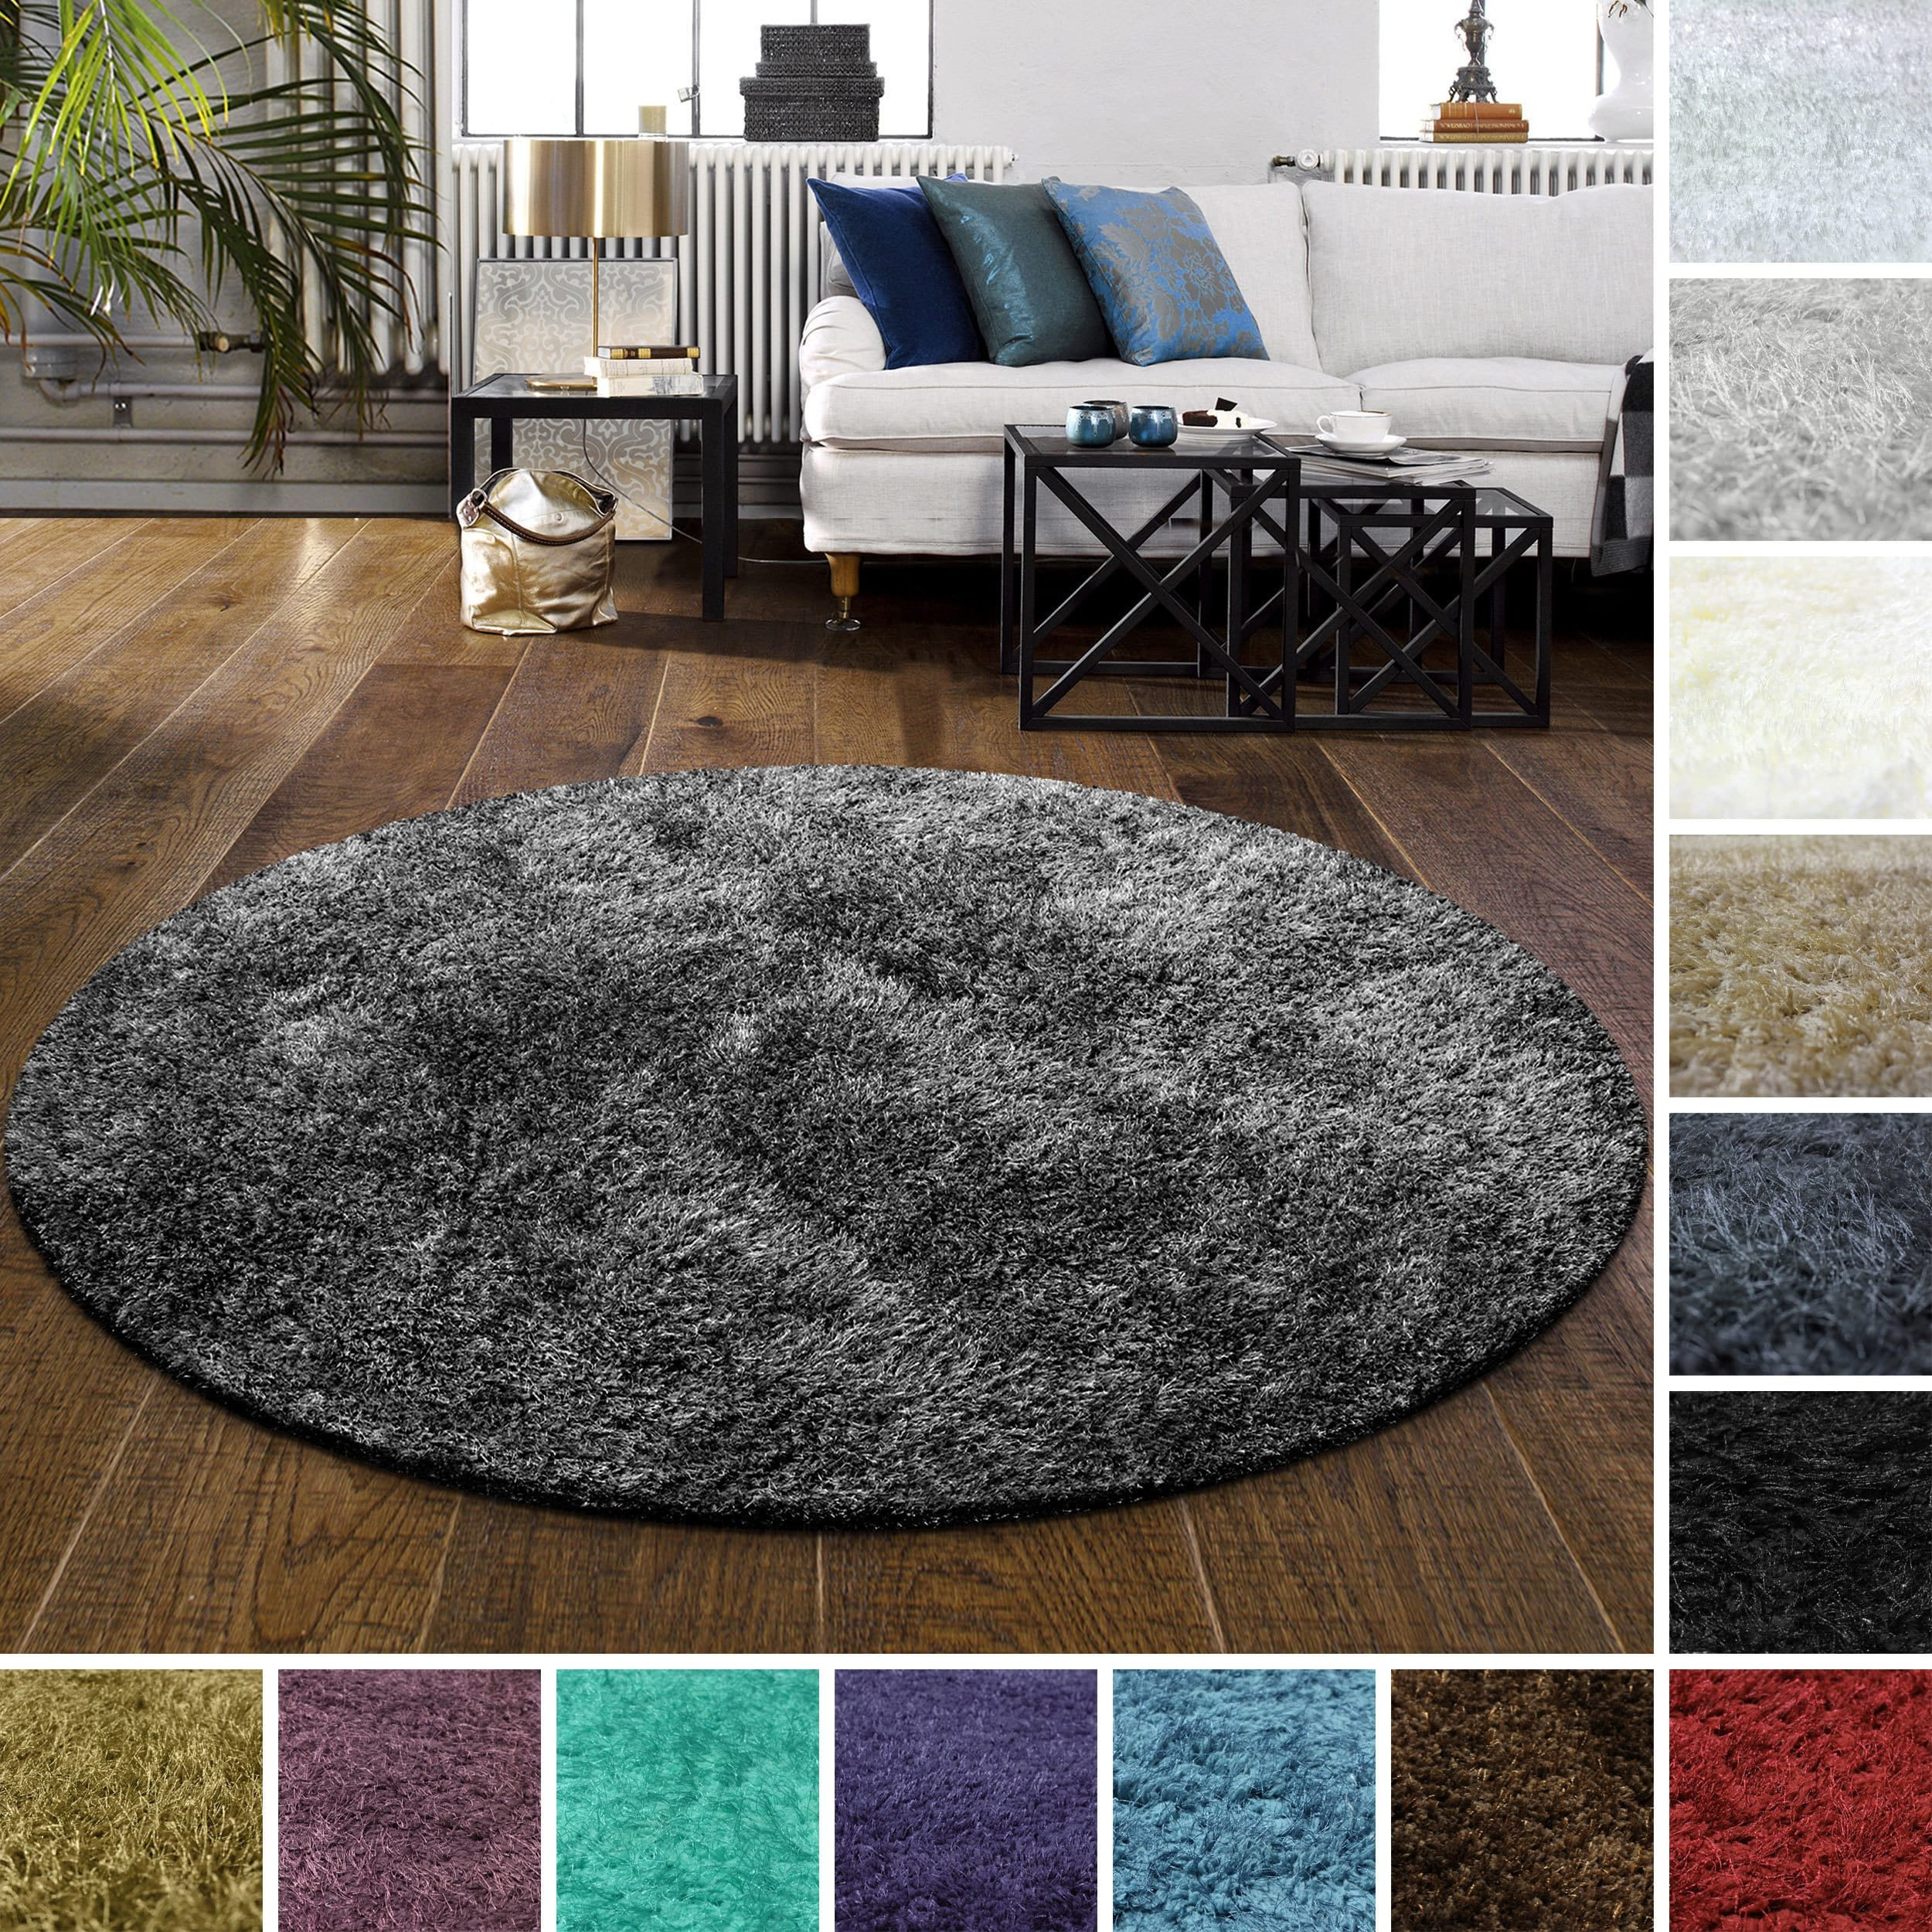 Soft Rugs for Bedroom Unique Superior Elegant Plush Cozy and Hand Woven Round Shag Rug